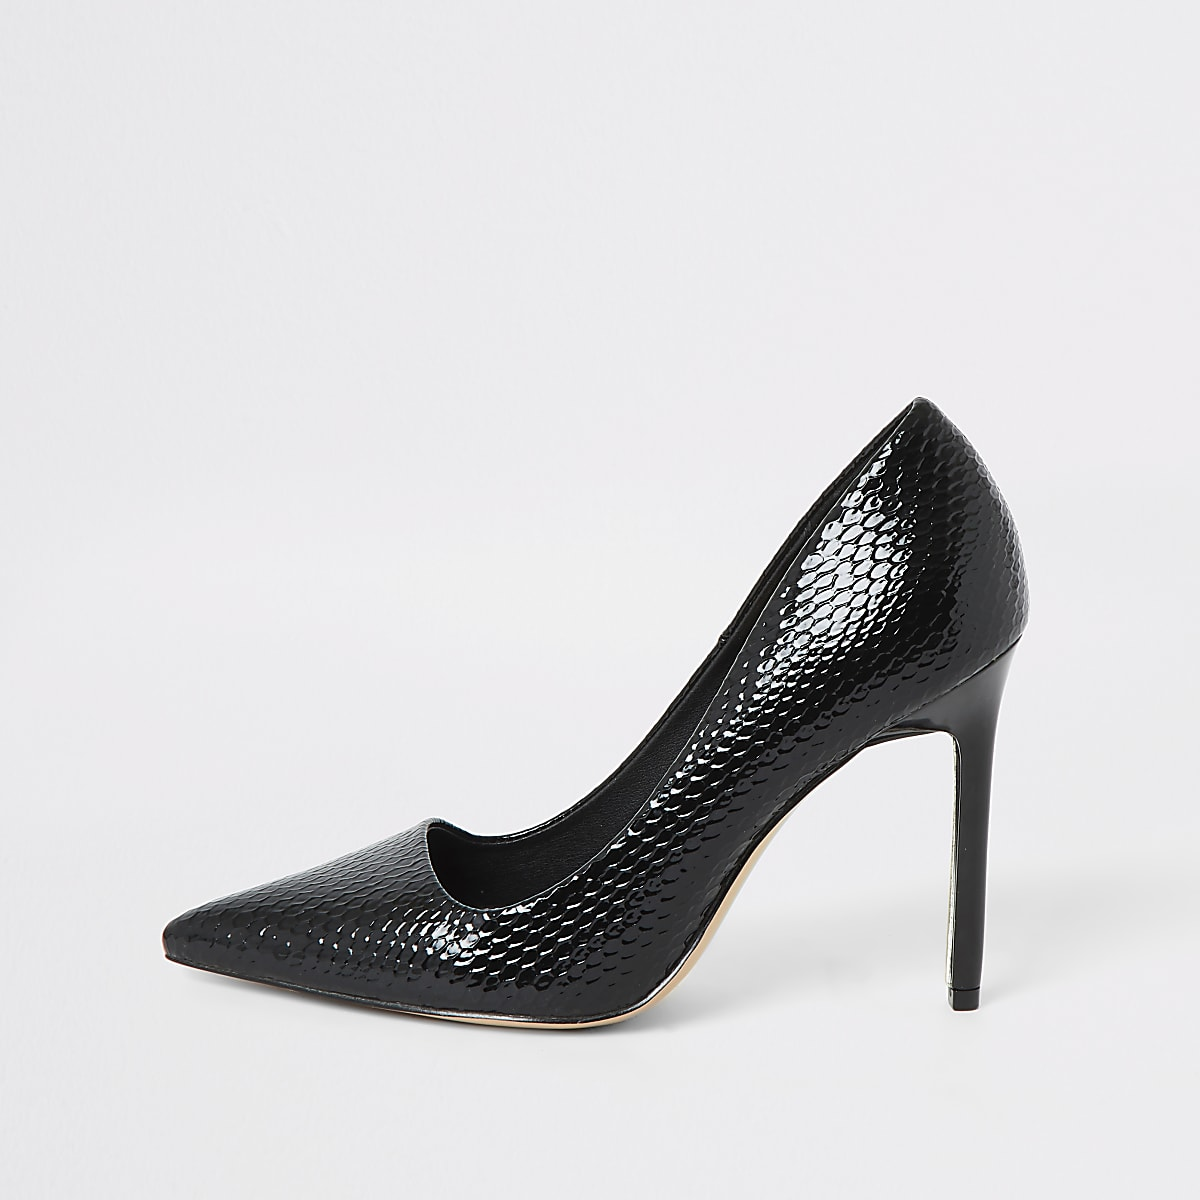 Black croc patent court shoes